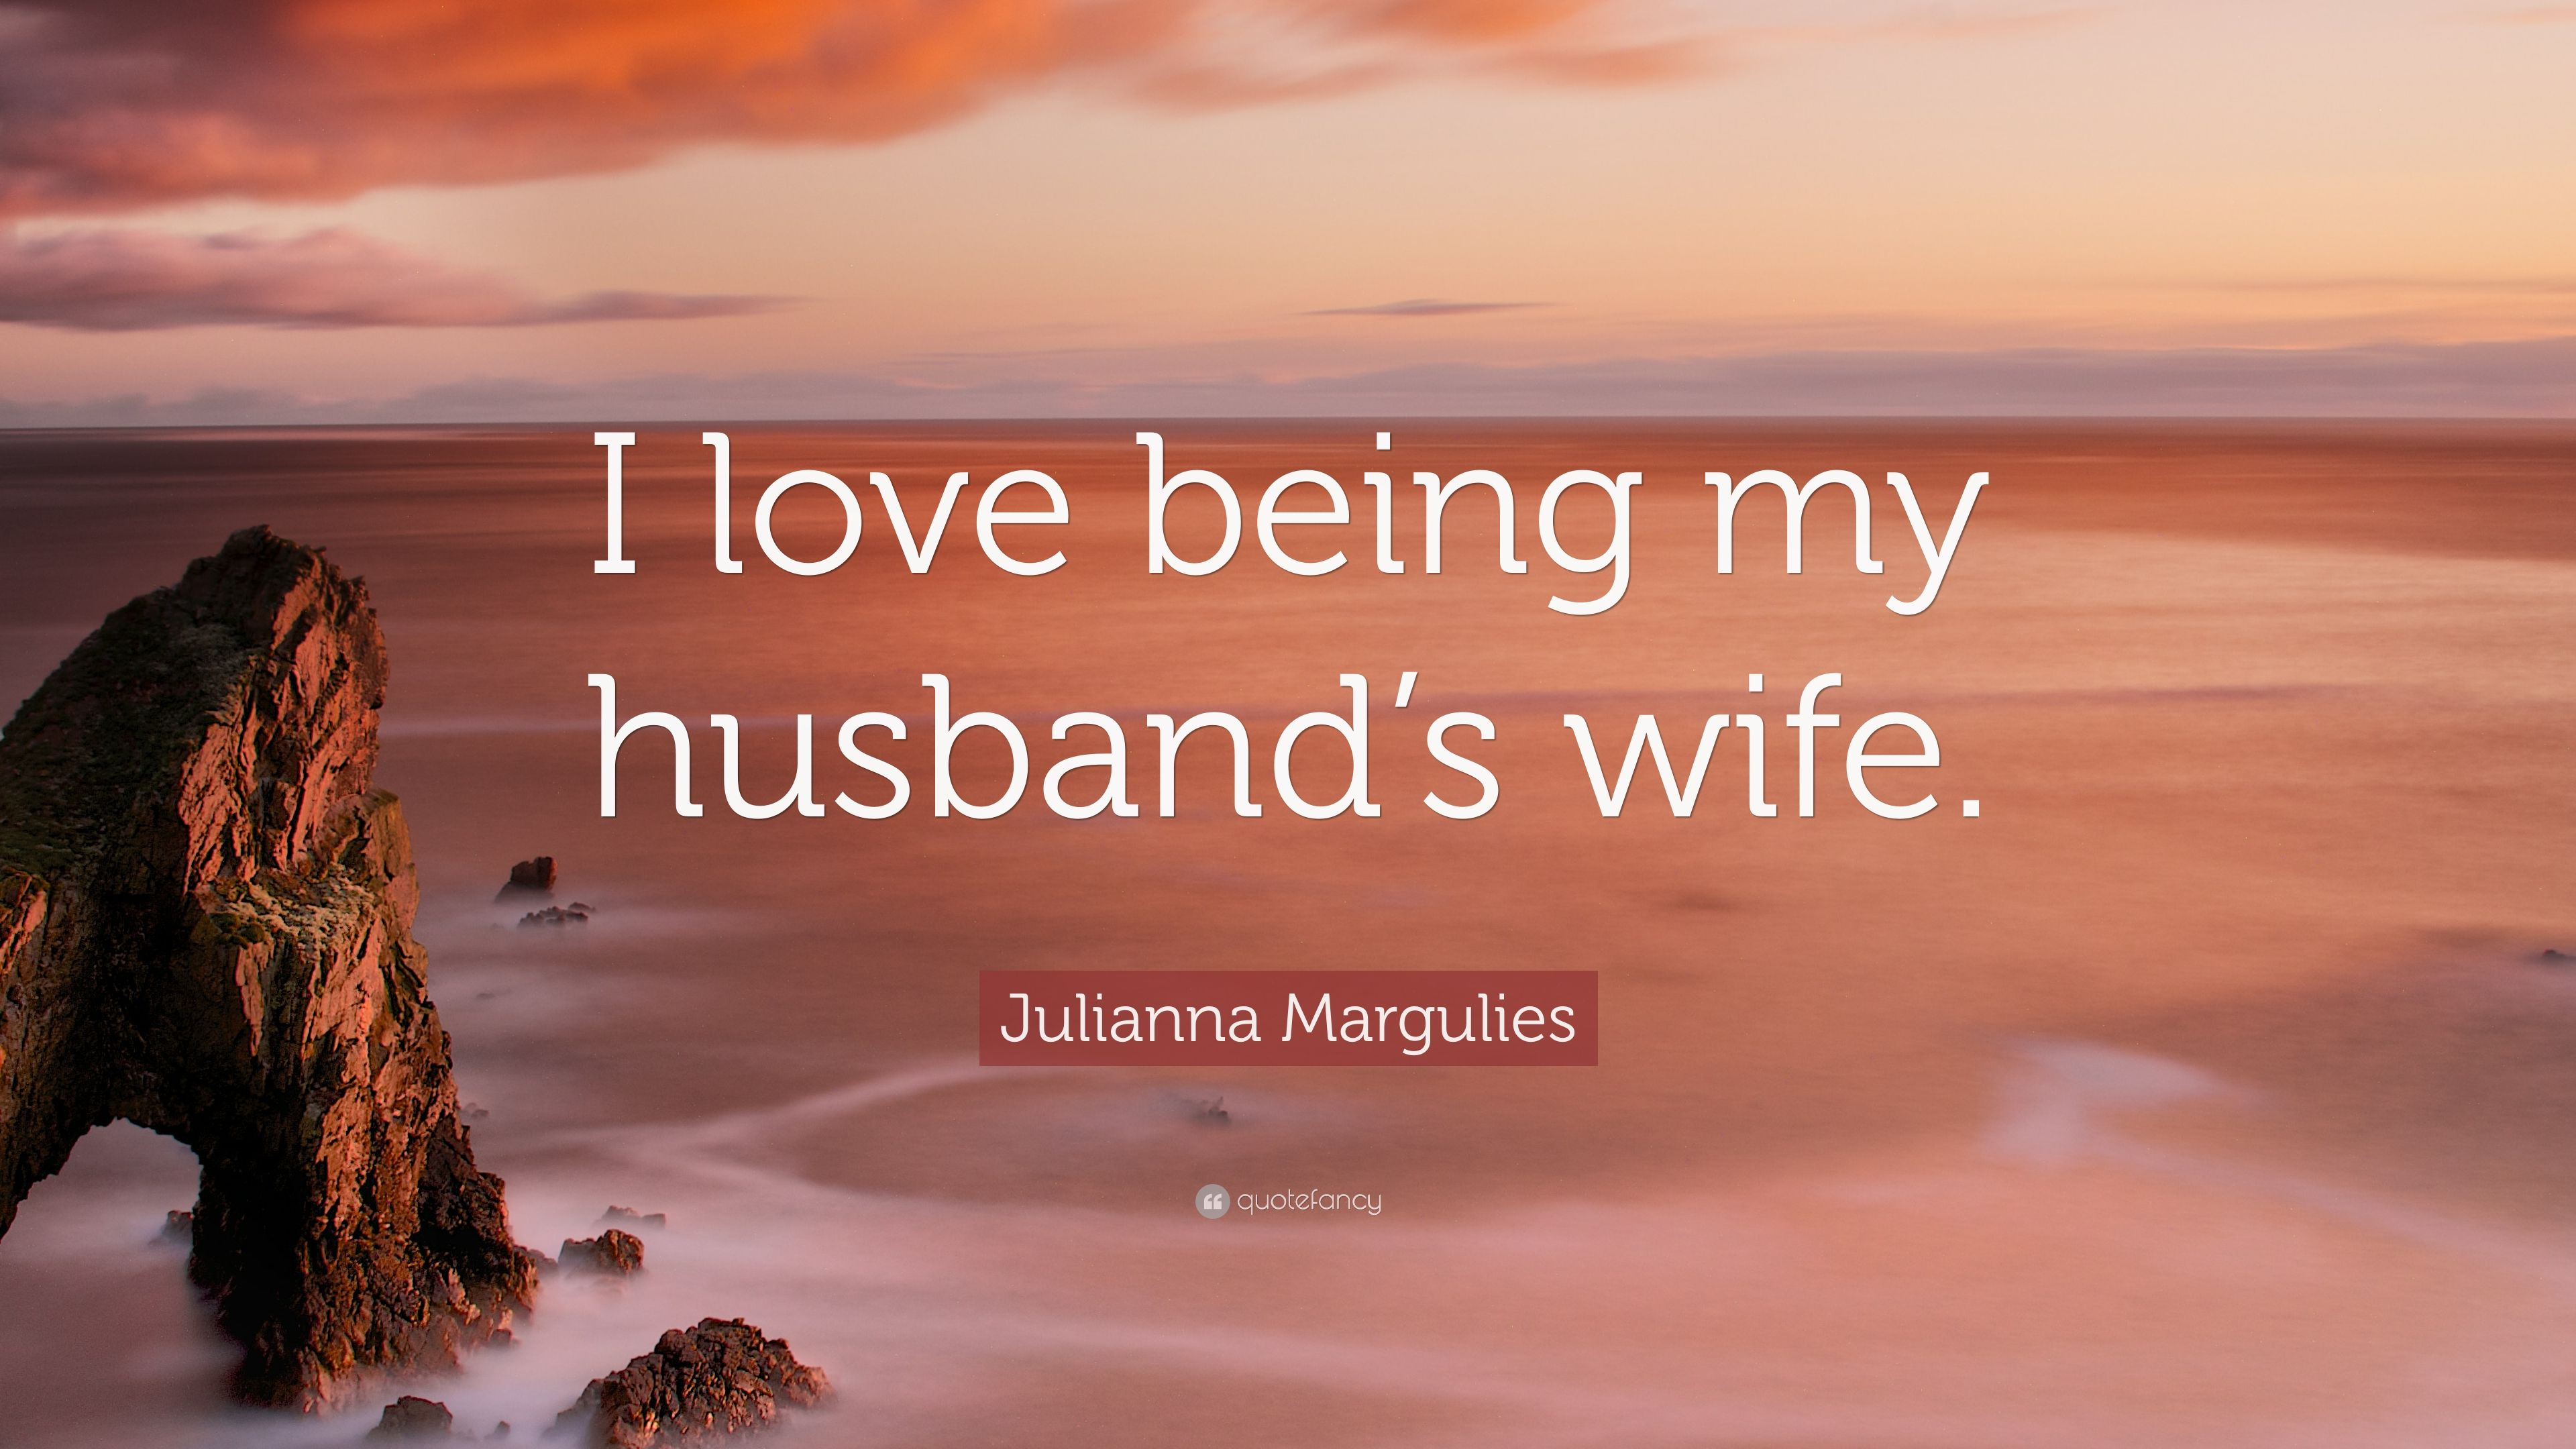 Julianna margulies quote i love being my husband s wife 7 wallpapers quotefancy - Wallpaper i love my husband ...